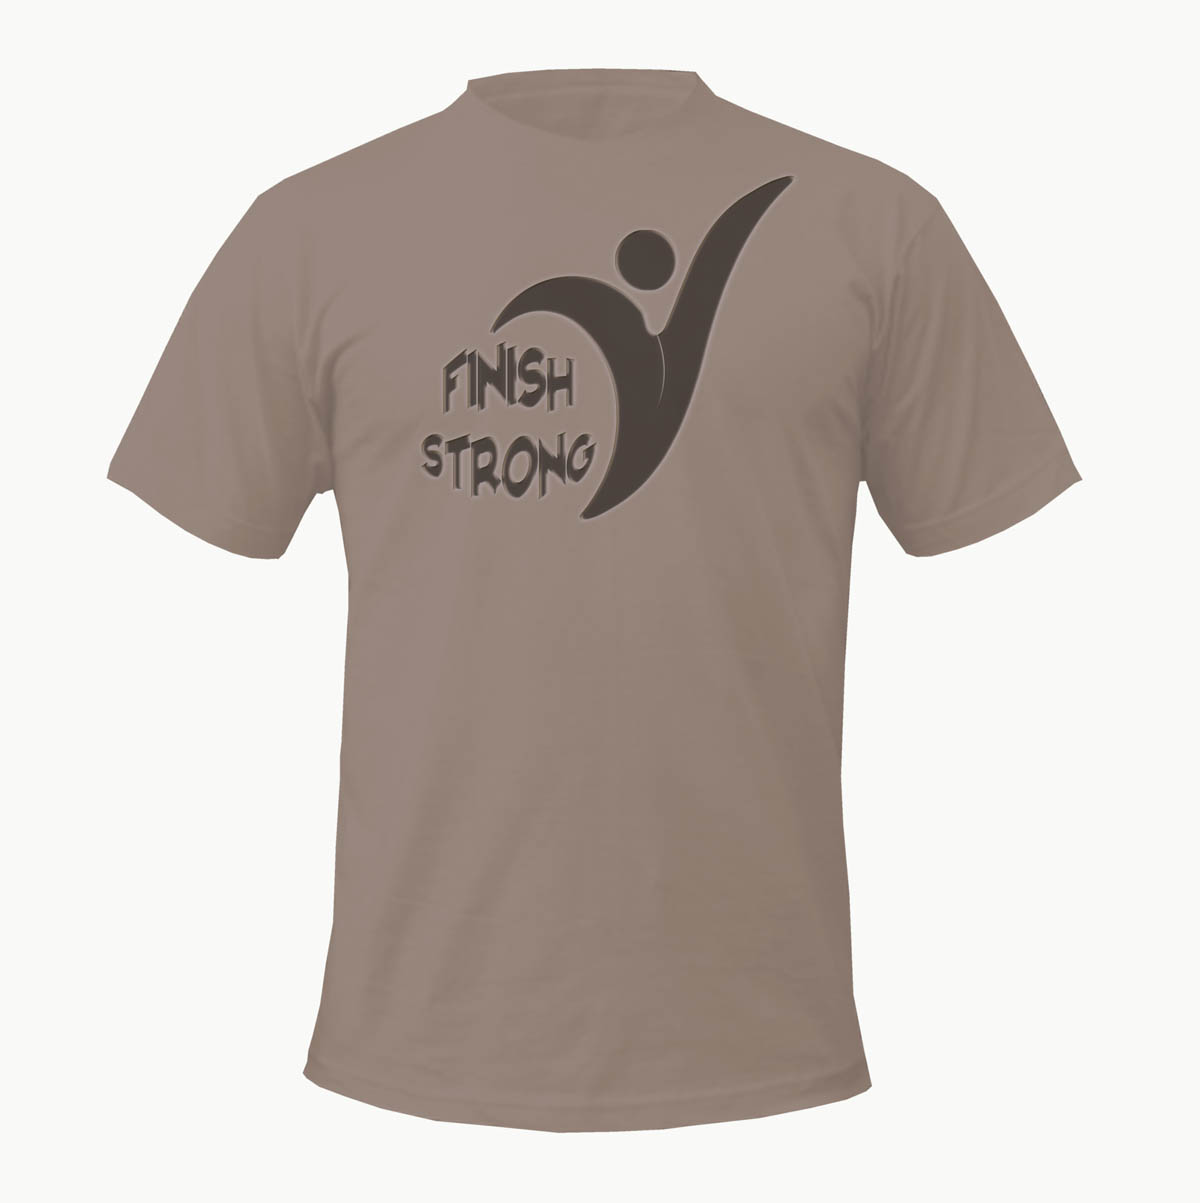 Bold Modern Online T Shirt Design For Finish Strong By D